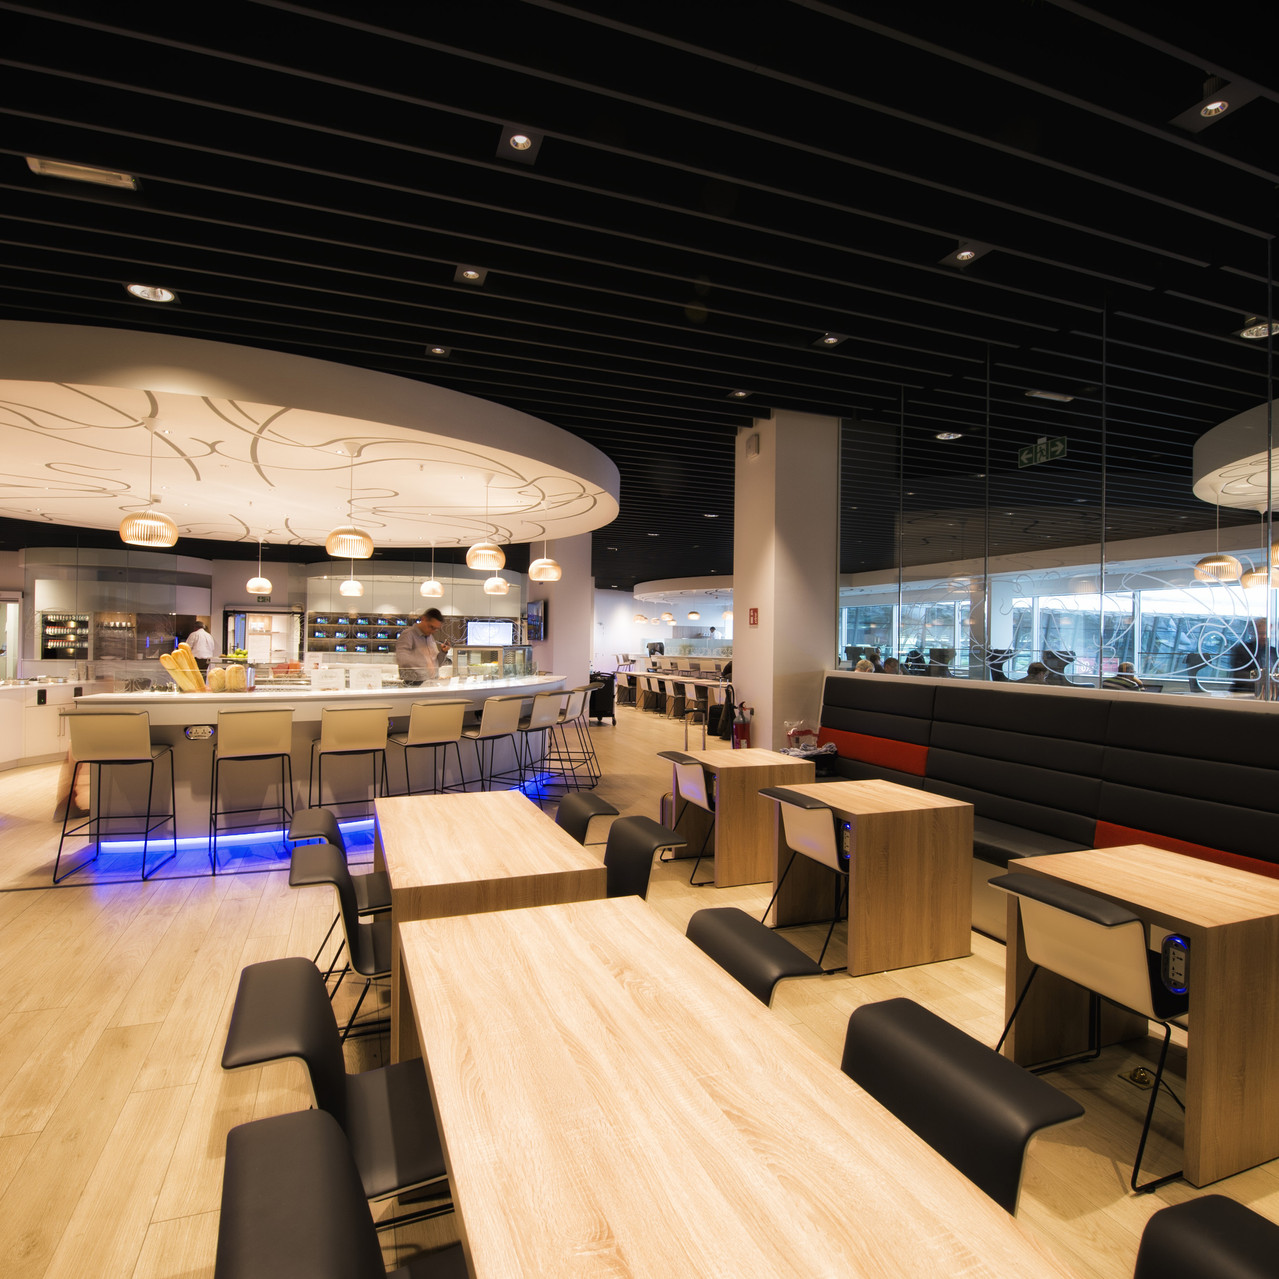 004_Lounge_Brussels Airlines